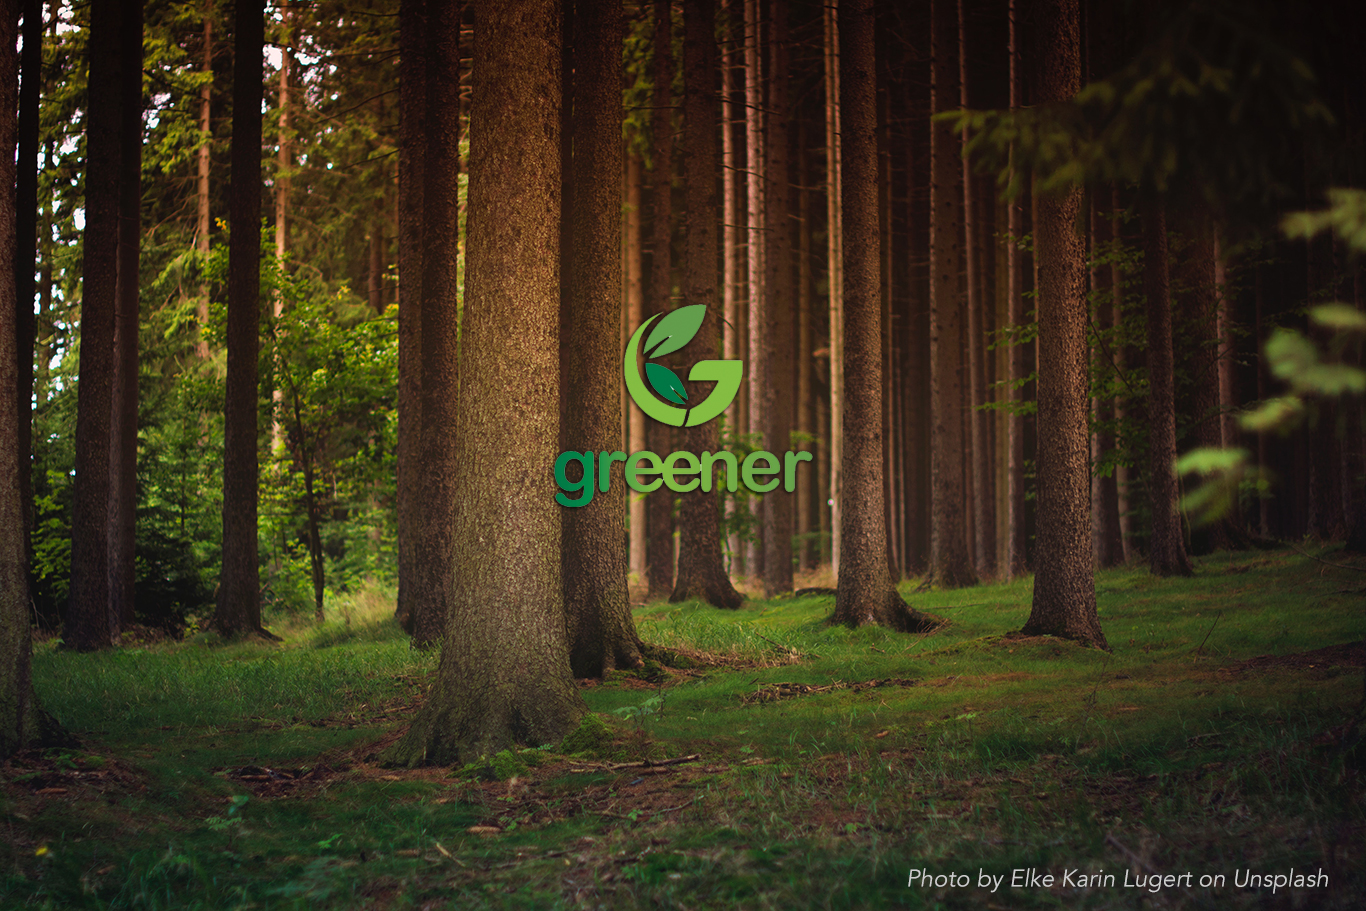 Greener, protection of land and water from chemical contaminants